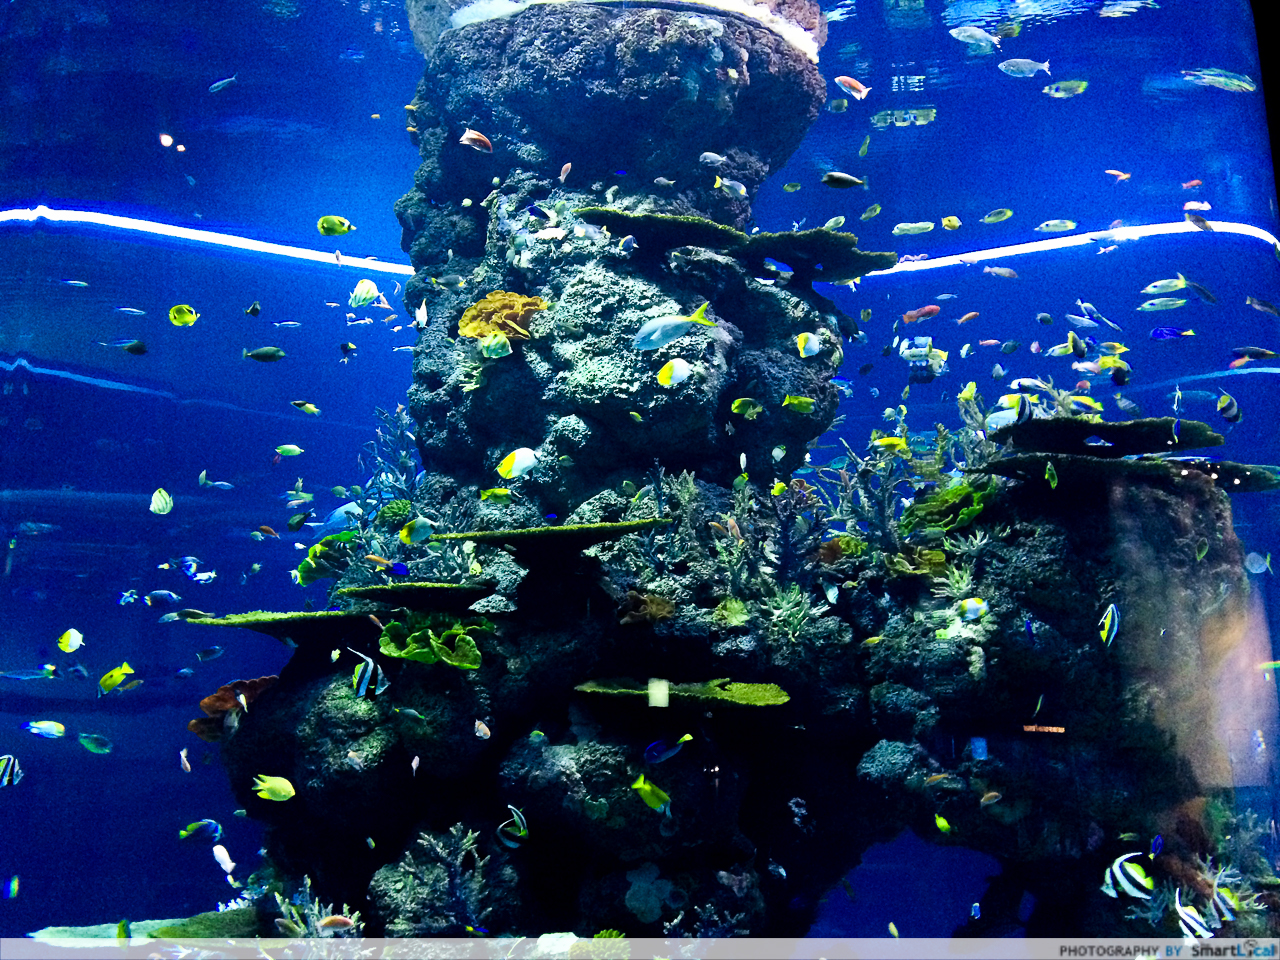 10 must visits at the s e a aquarium a guide to the world the sea thesmartlocal